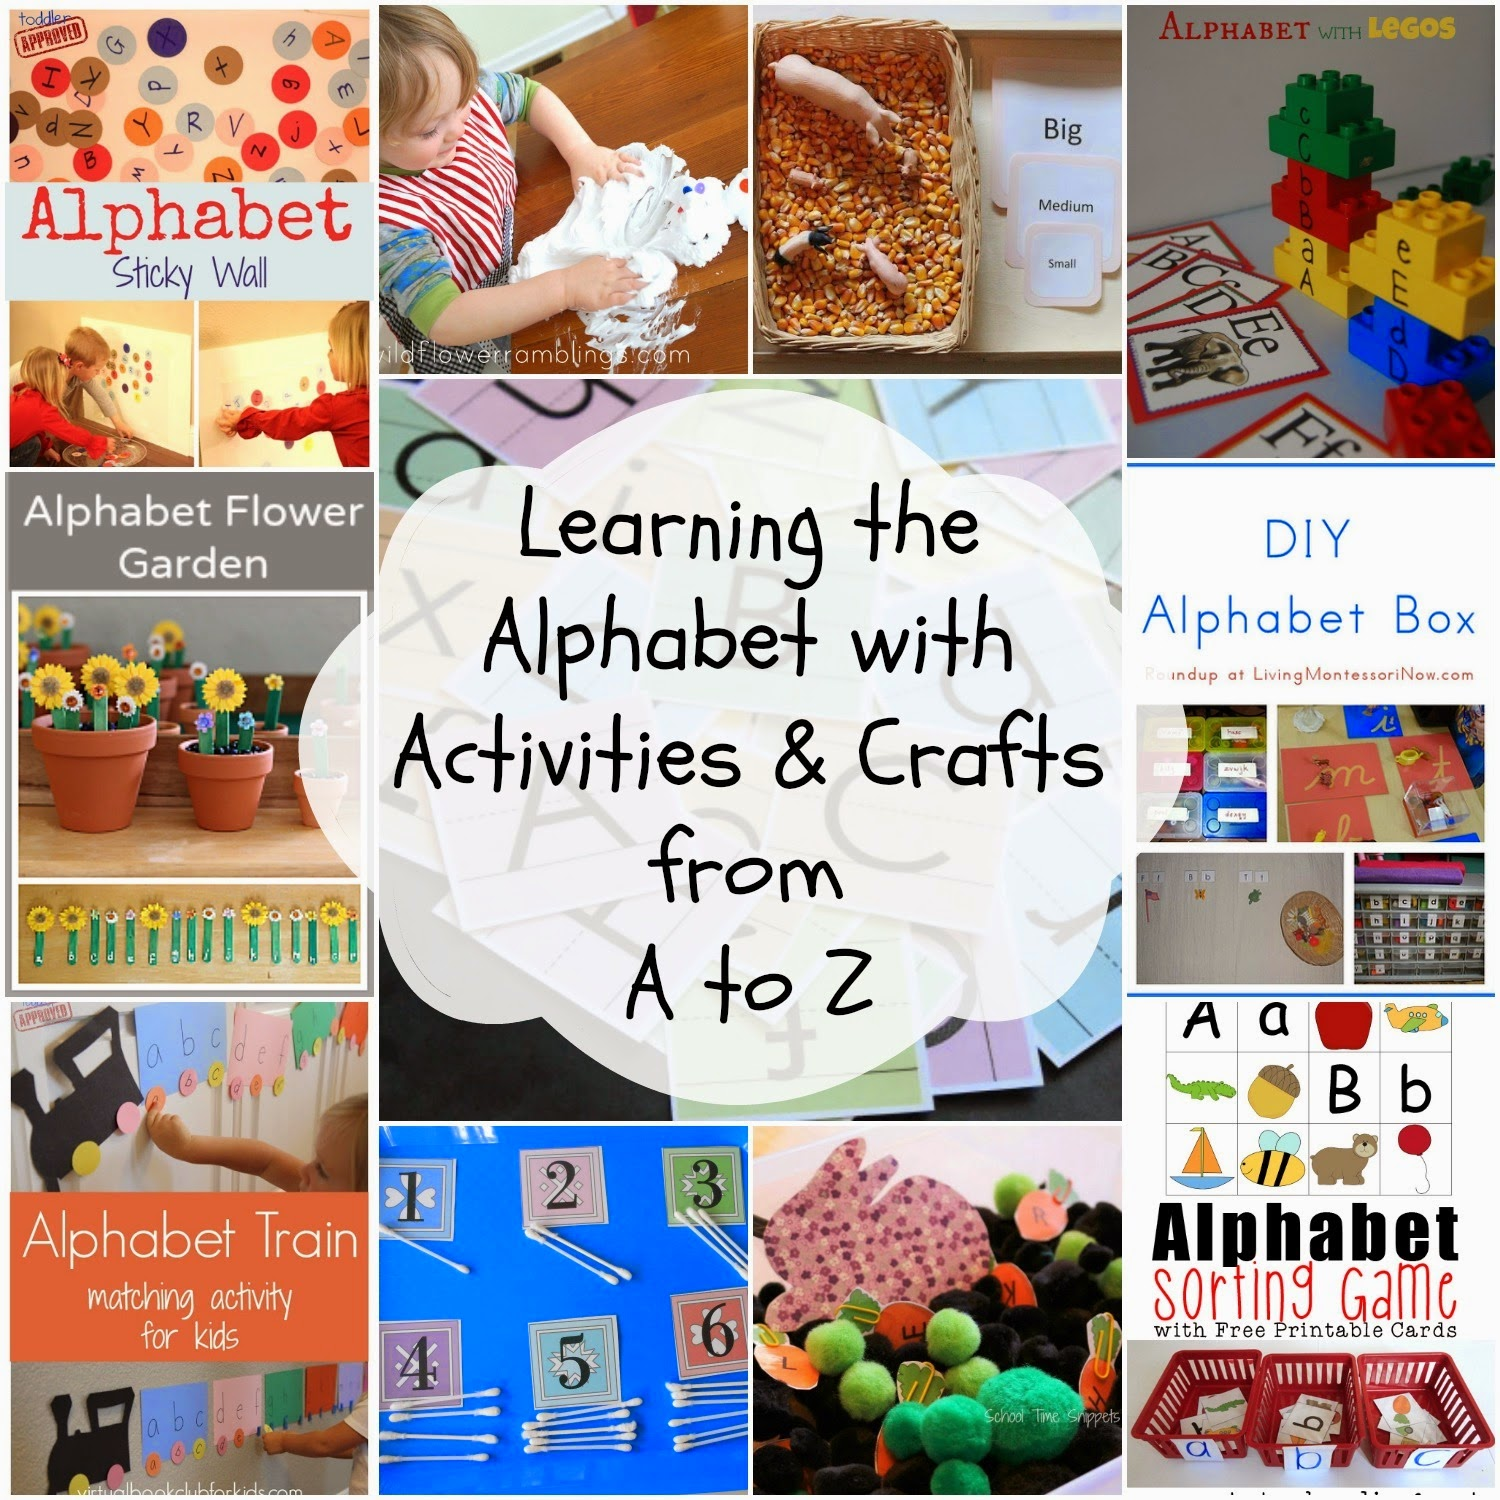 Alphabet - Natural Beach Living, letter of the week, books, organization, Sensory play, Crafts, www.naturalbeachliving.com